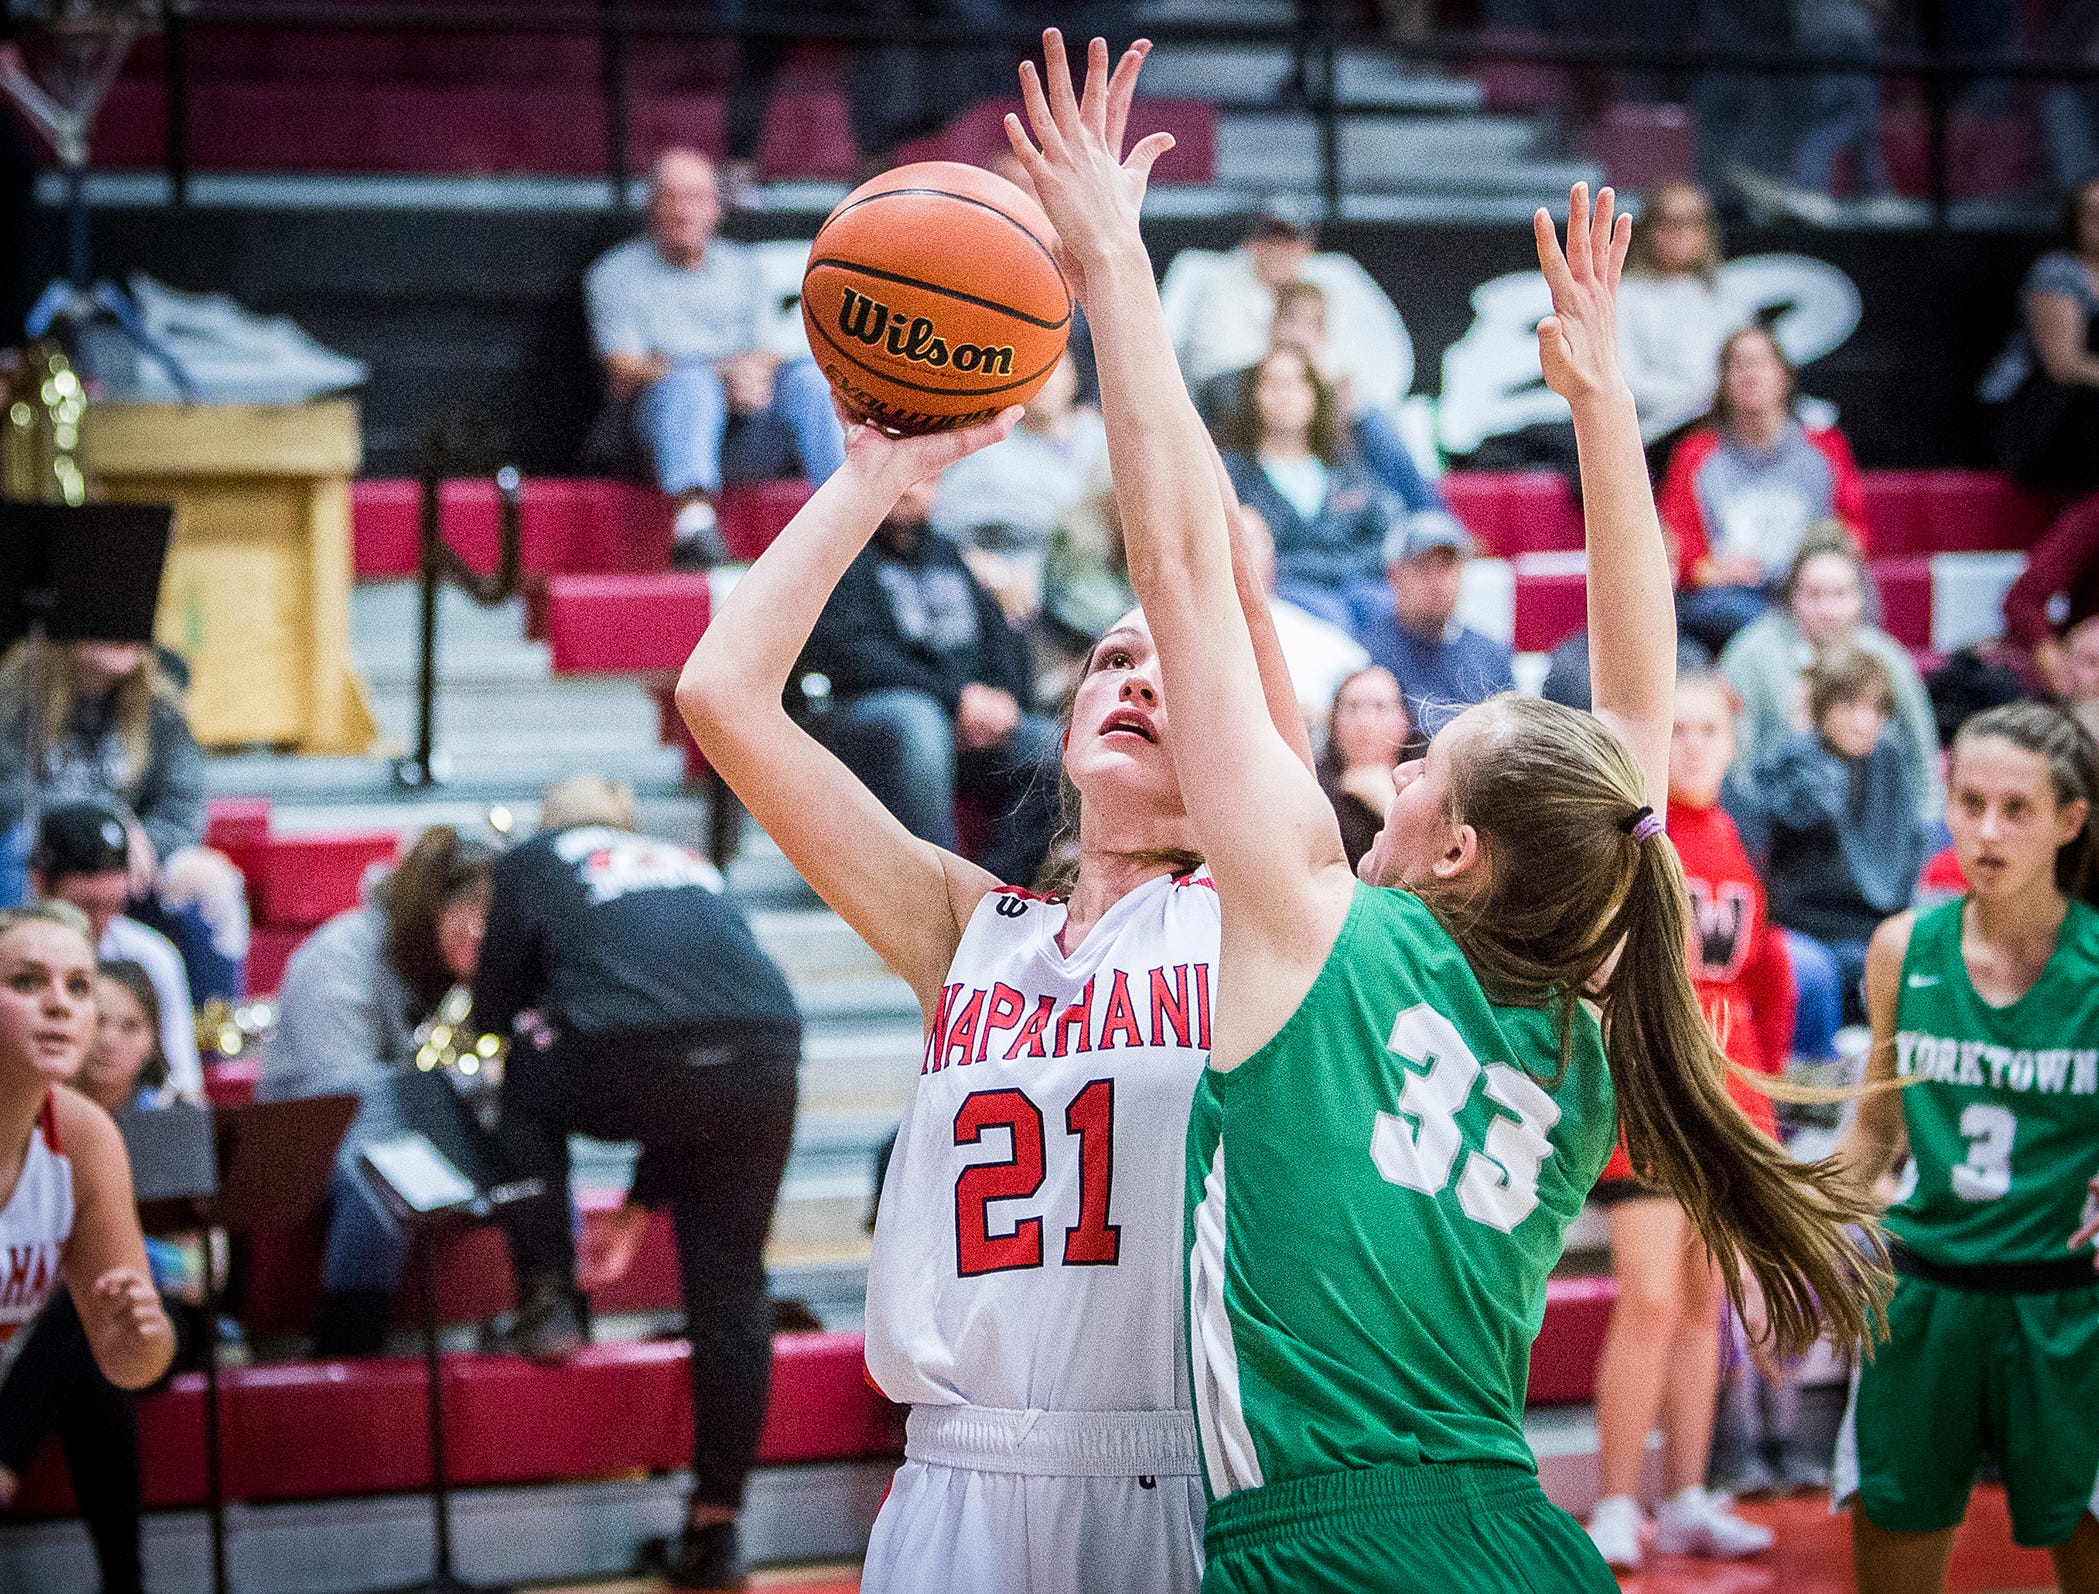 Wapahani's Sydney Cook shoots past Yorktown's defense during their game at Wapahani High School Tuesday, Dec. 4, 2018.